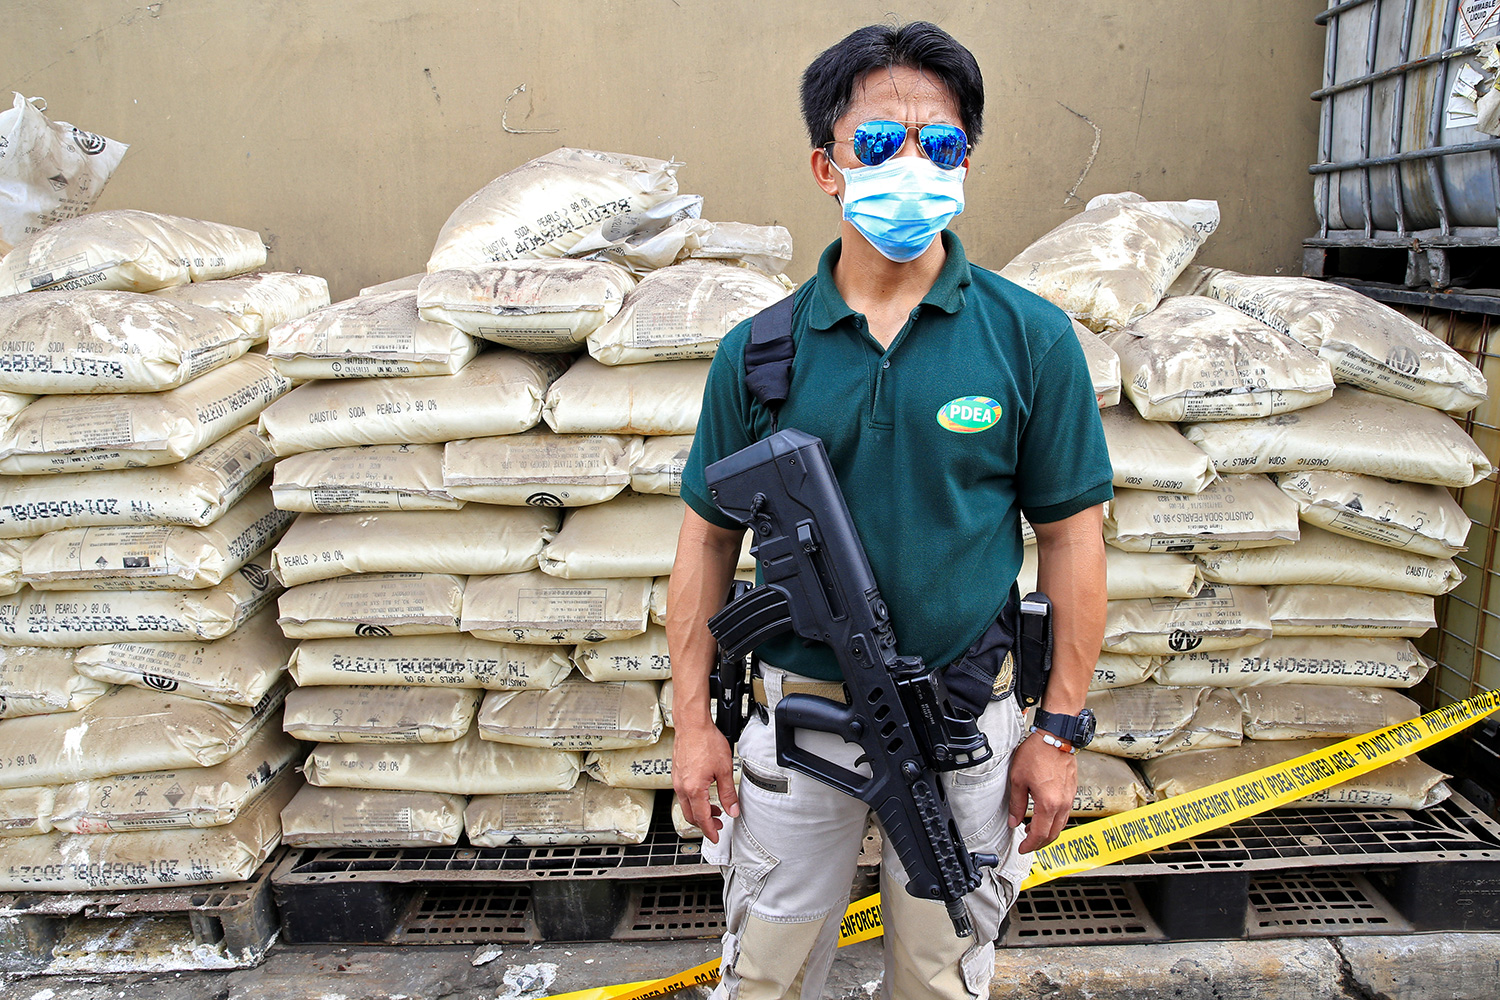 The photo shows the agent in reflective glasses standing in front of a huge stack of bagged chemicals.